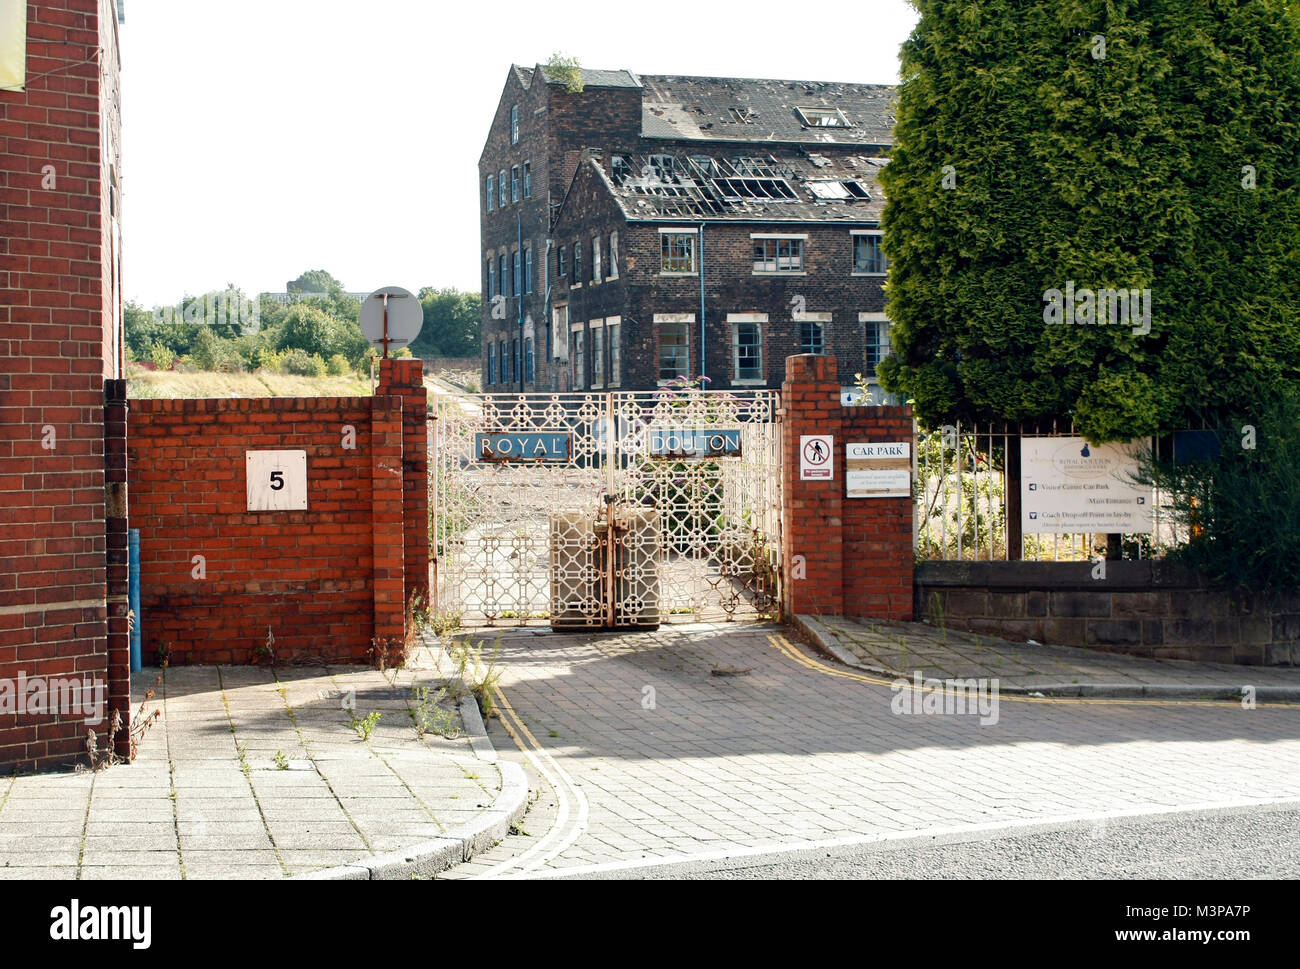 The Historic gate of the Royal Doulton ceramic pot bank factory, closed down, and awaiting demolition, 2009, Burslem, - Stock Image